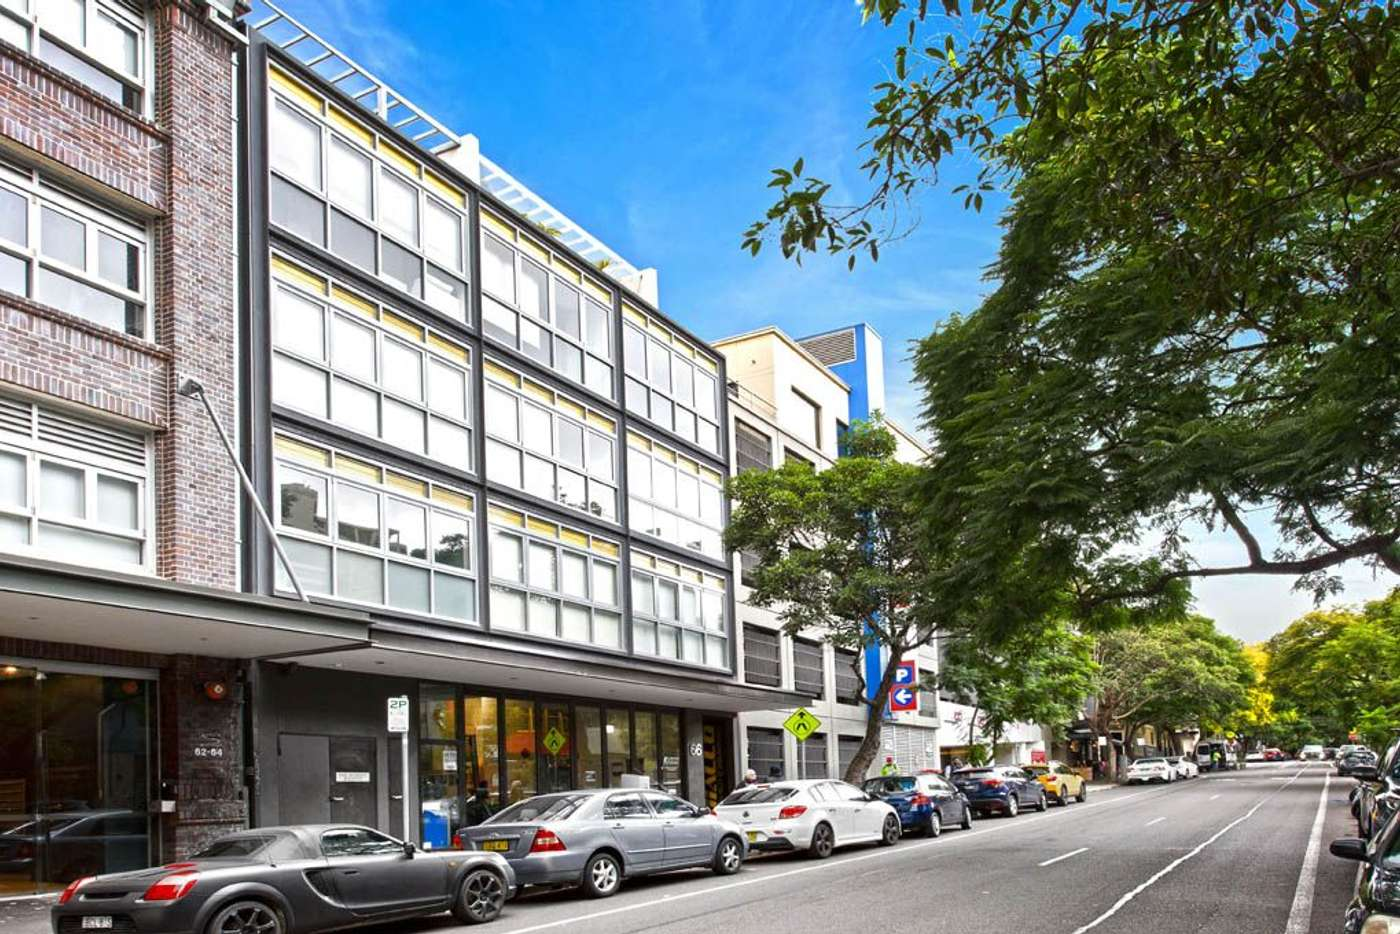 Main view of Homely apartment listing, 20/66-68 Riley Street, Darlinghurst NSW 2010